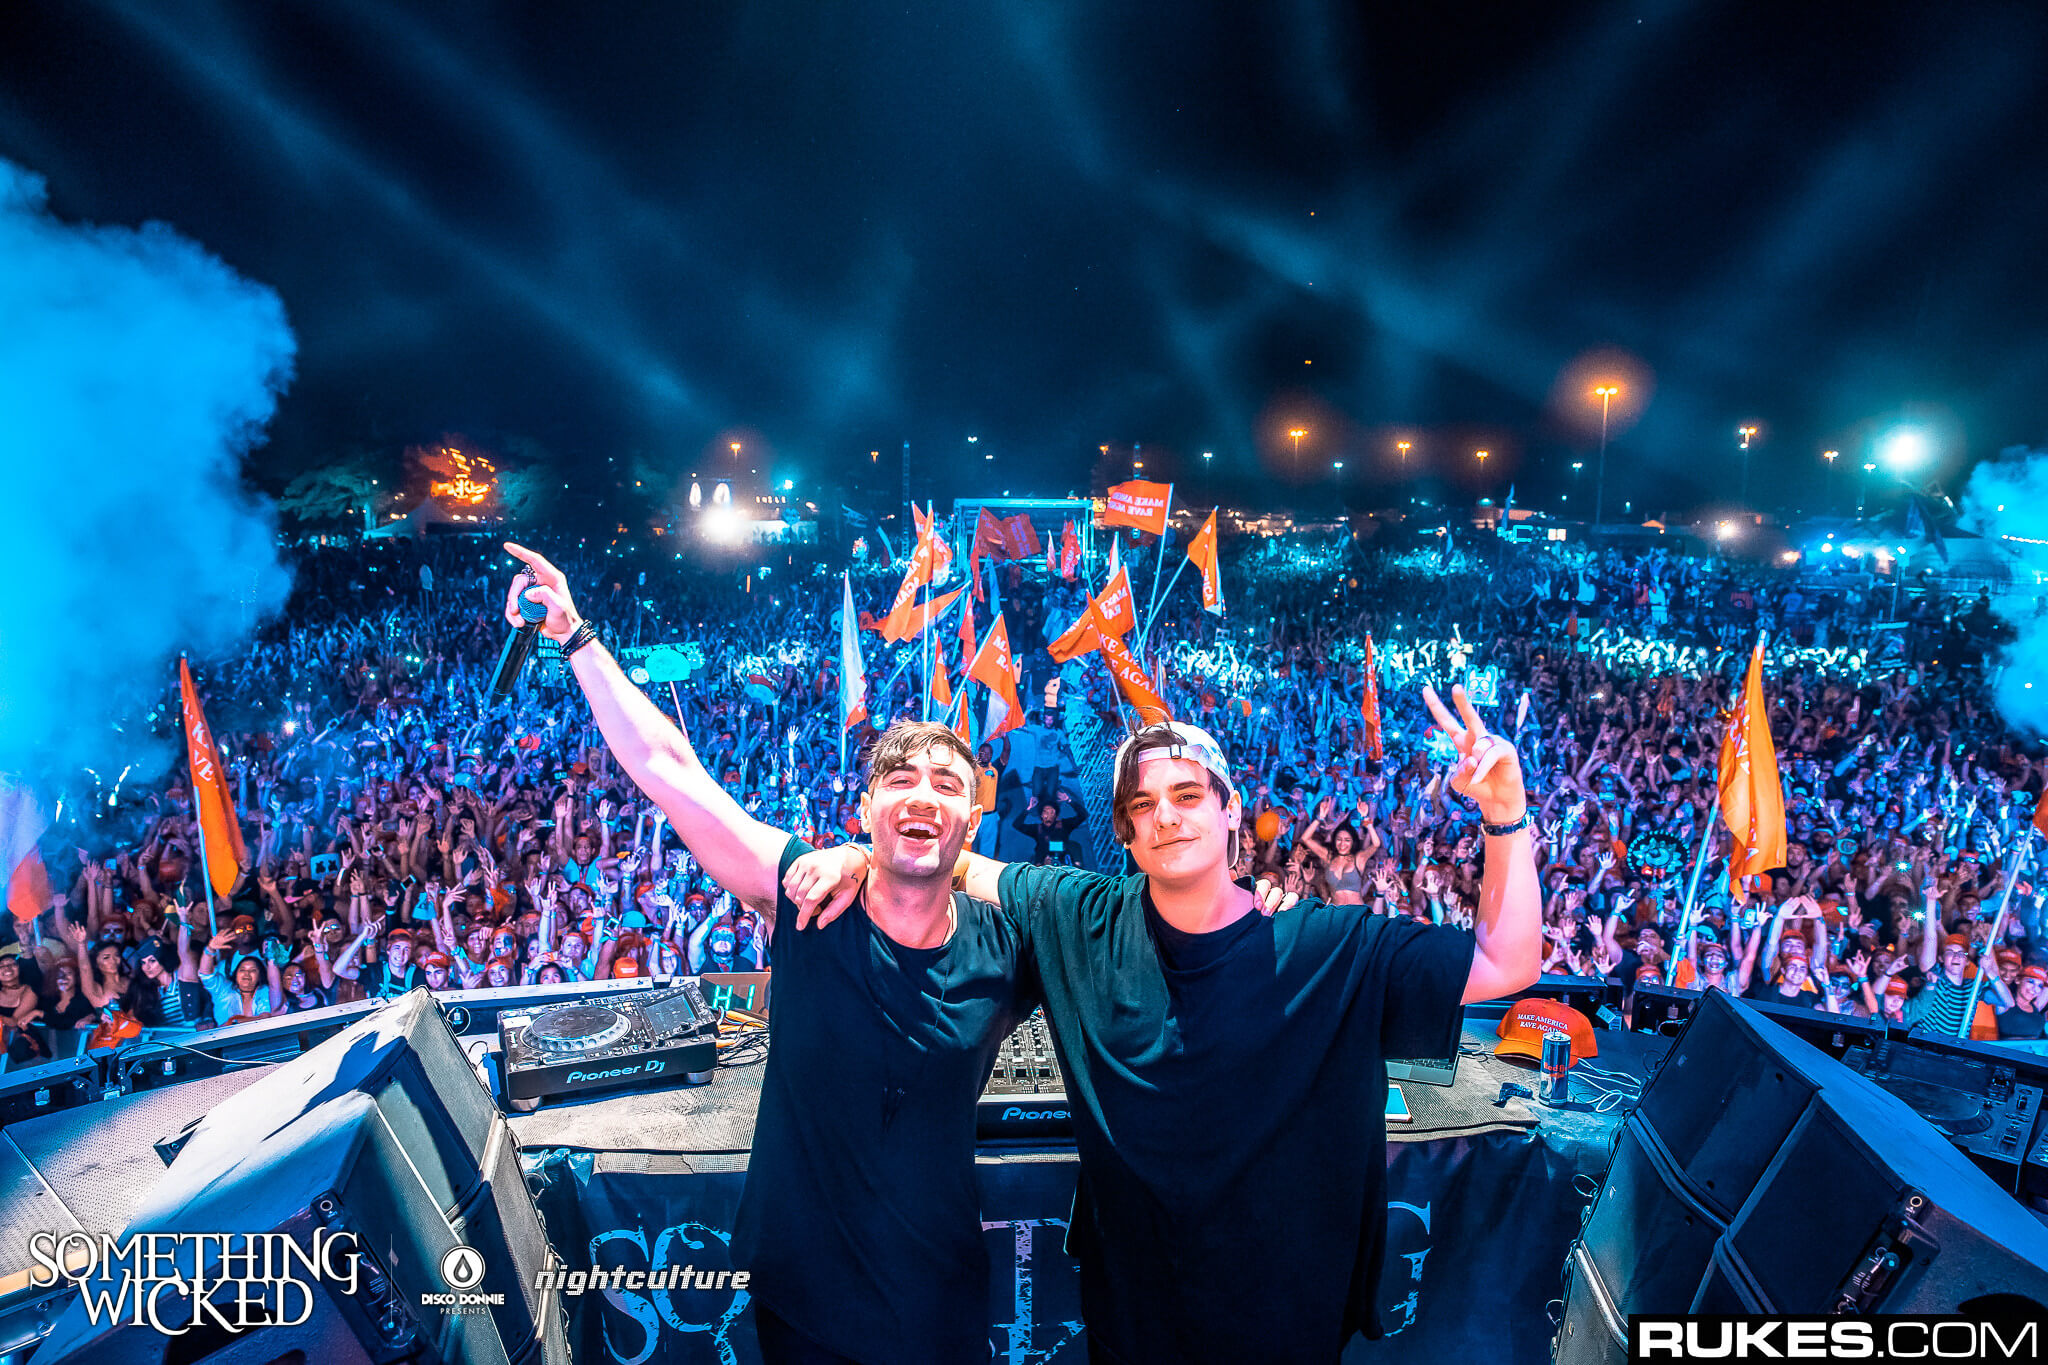 3LAU and Audien at Something Wicked. Photo by Rukes.